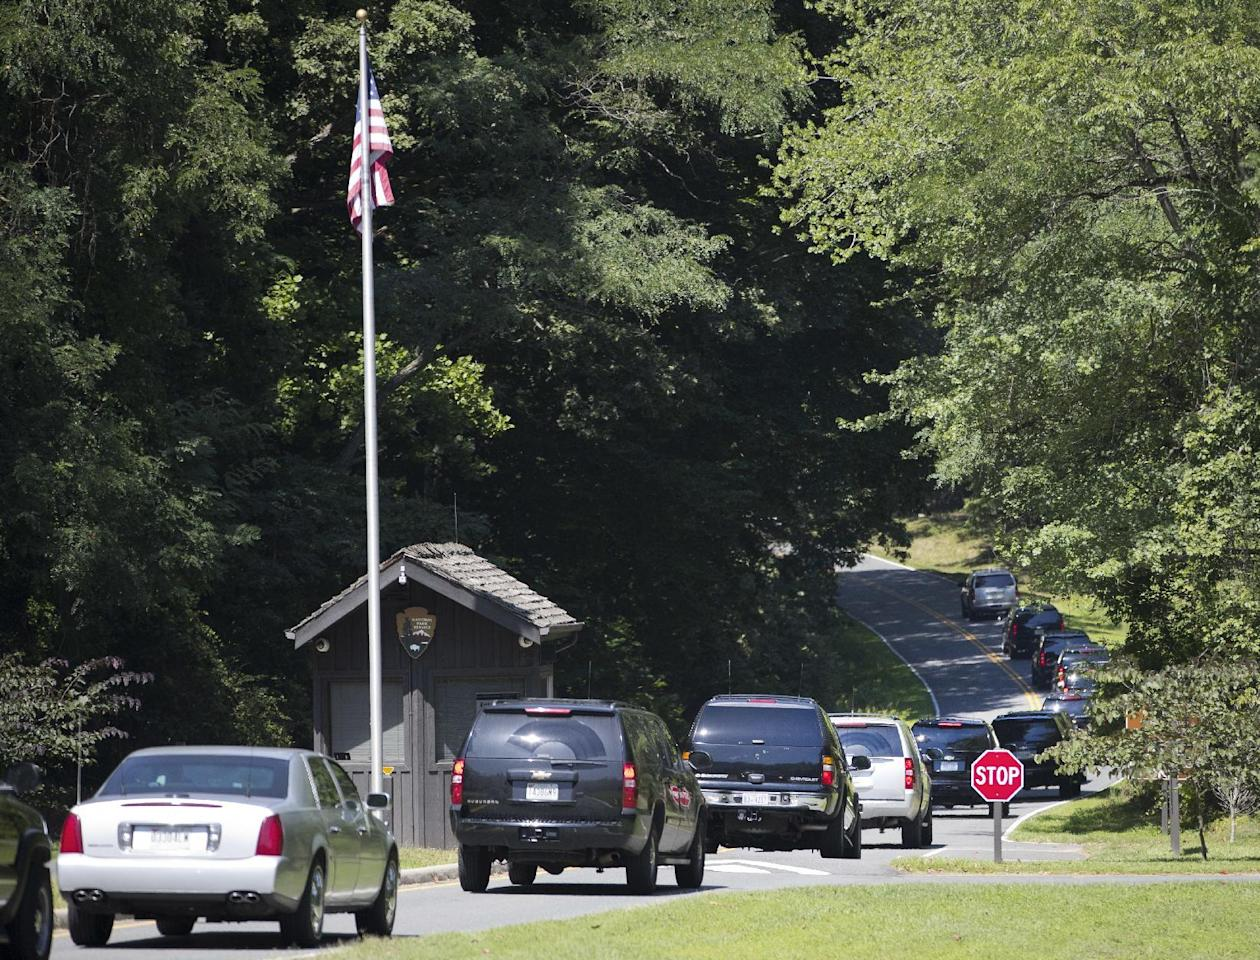 Motorcade vehicles escorting President Barack Obama and members of his family arrive at entrance to Prince William Forest Park in Va., Sunday, Aug. 28, 2016. The president and first family are planning on hiking at the national park during their visit to the area. (AP Photo/Pablo Martinez Monsivais)